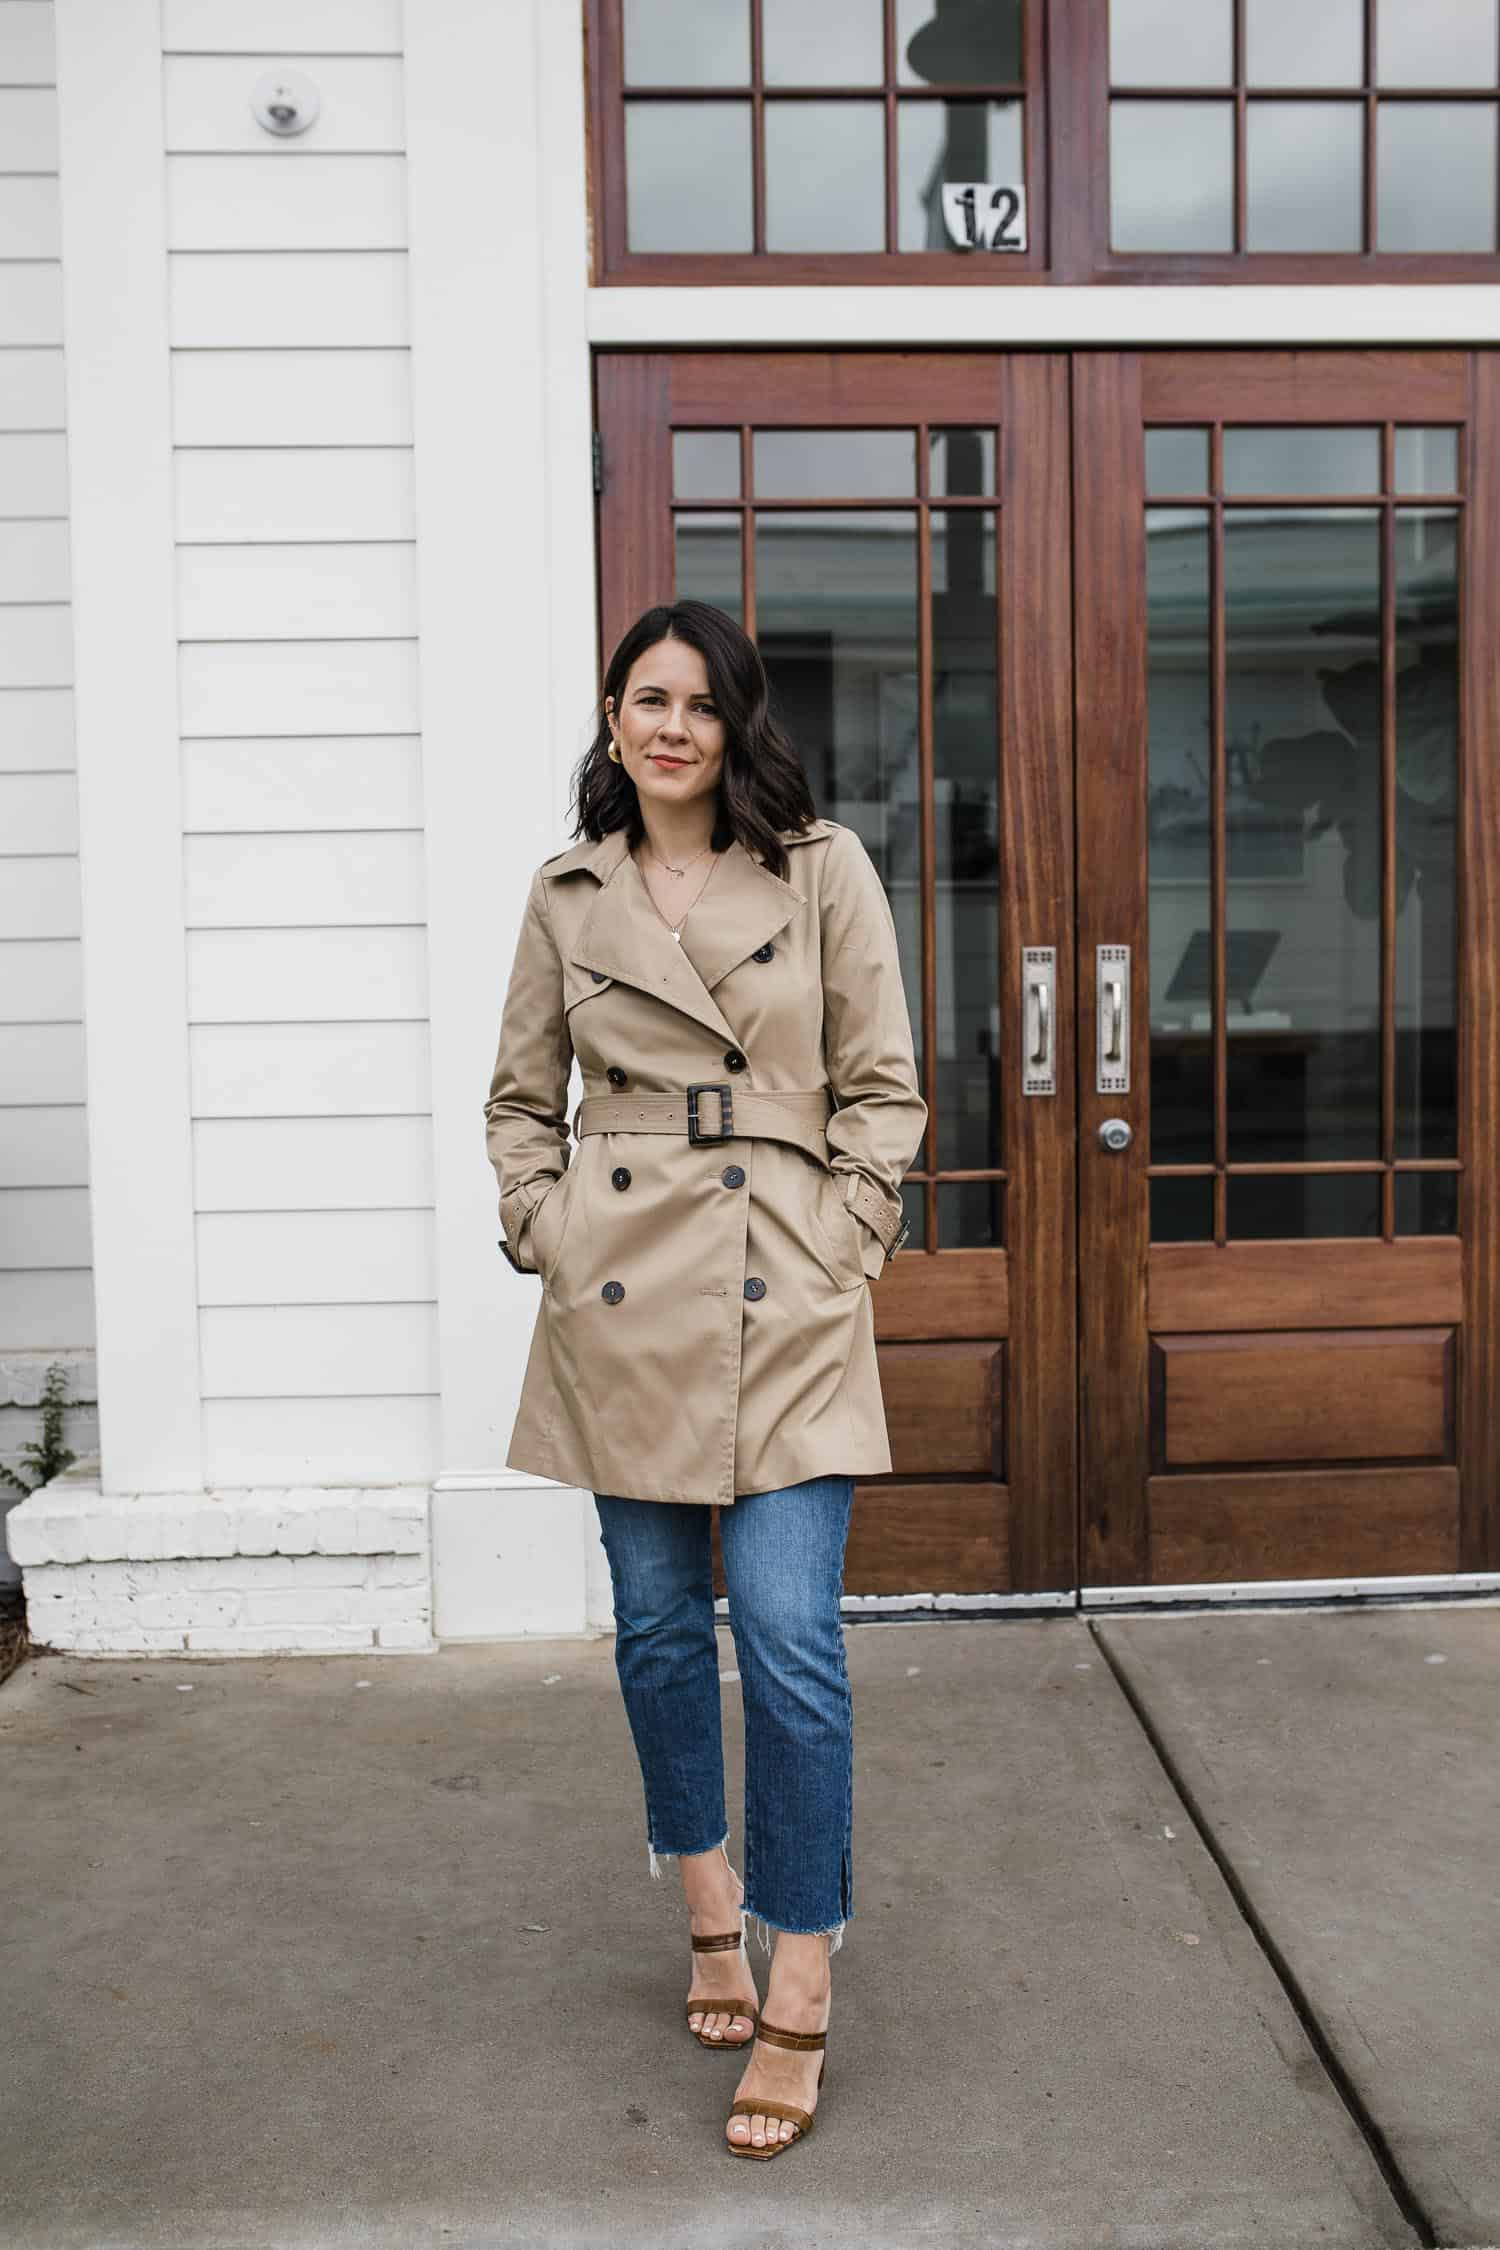 The Best Trench Coats Under $200 | Jessica Camerata styles a trench coat with jeans for fall